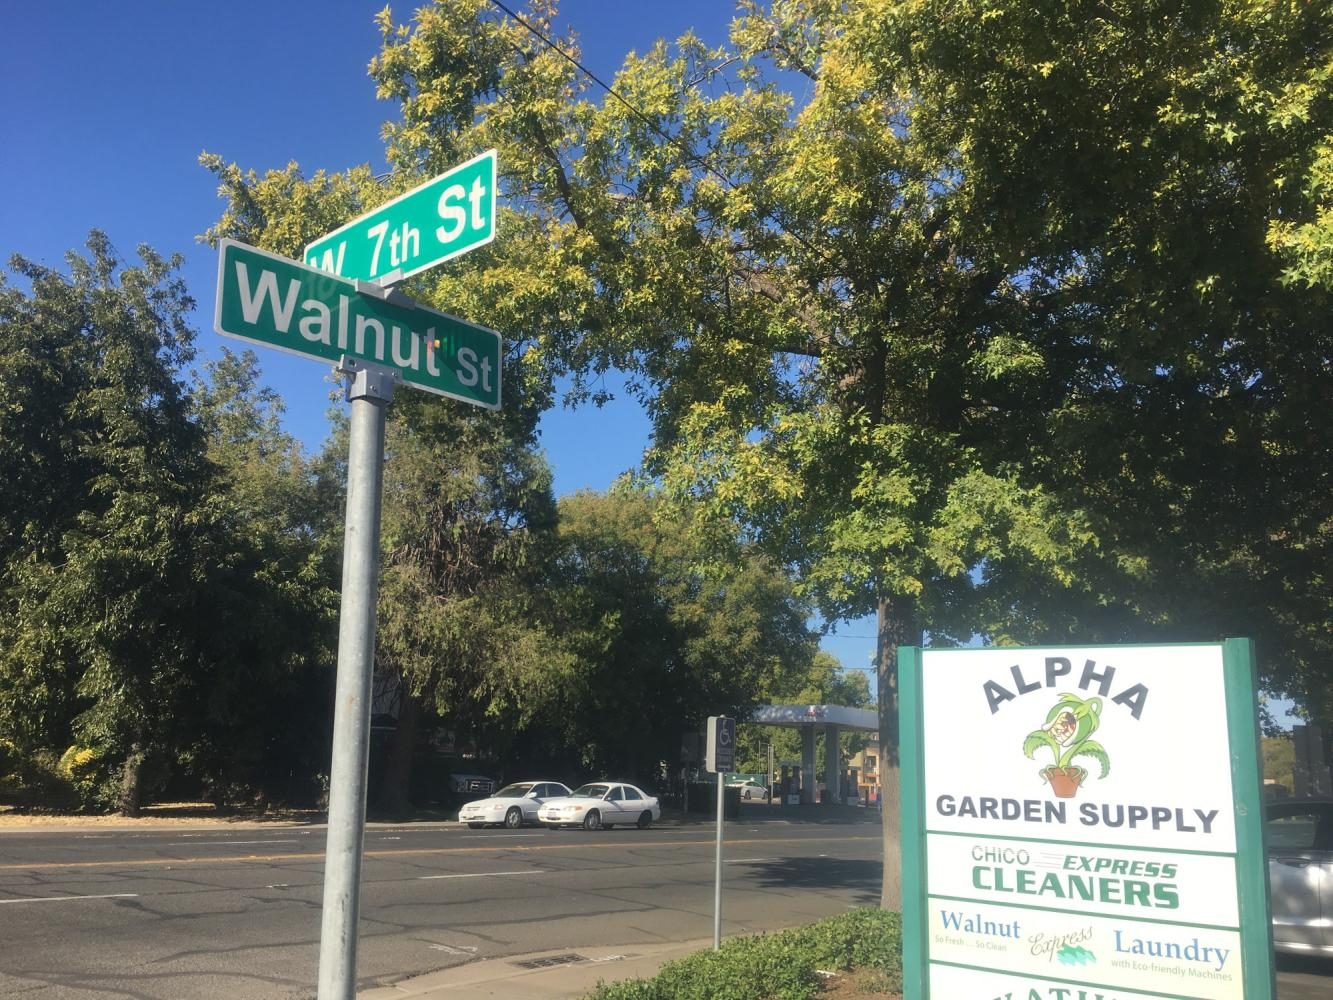 A woman was beaten and robbed near Highway 32 on Monday near 7th and Walnut Street. Photo credit: Natalie Hanson